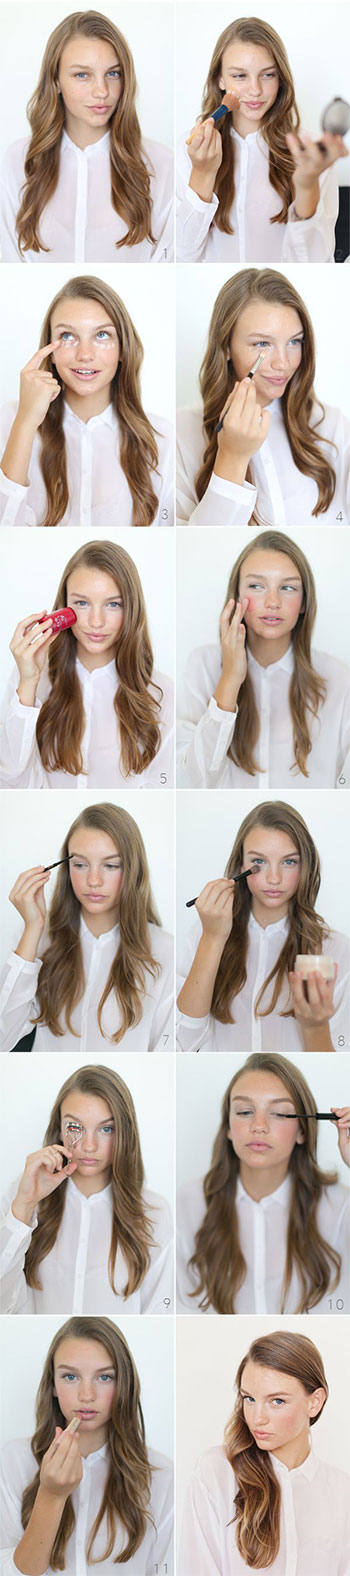 15-Easy-Natural-Make-Up-Tutorials-2014-For-Beginners-Learners-13